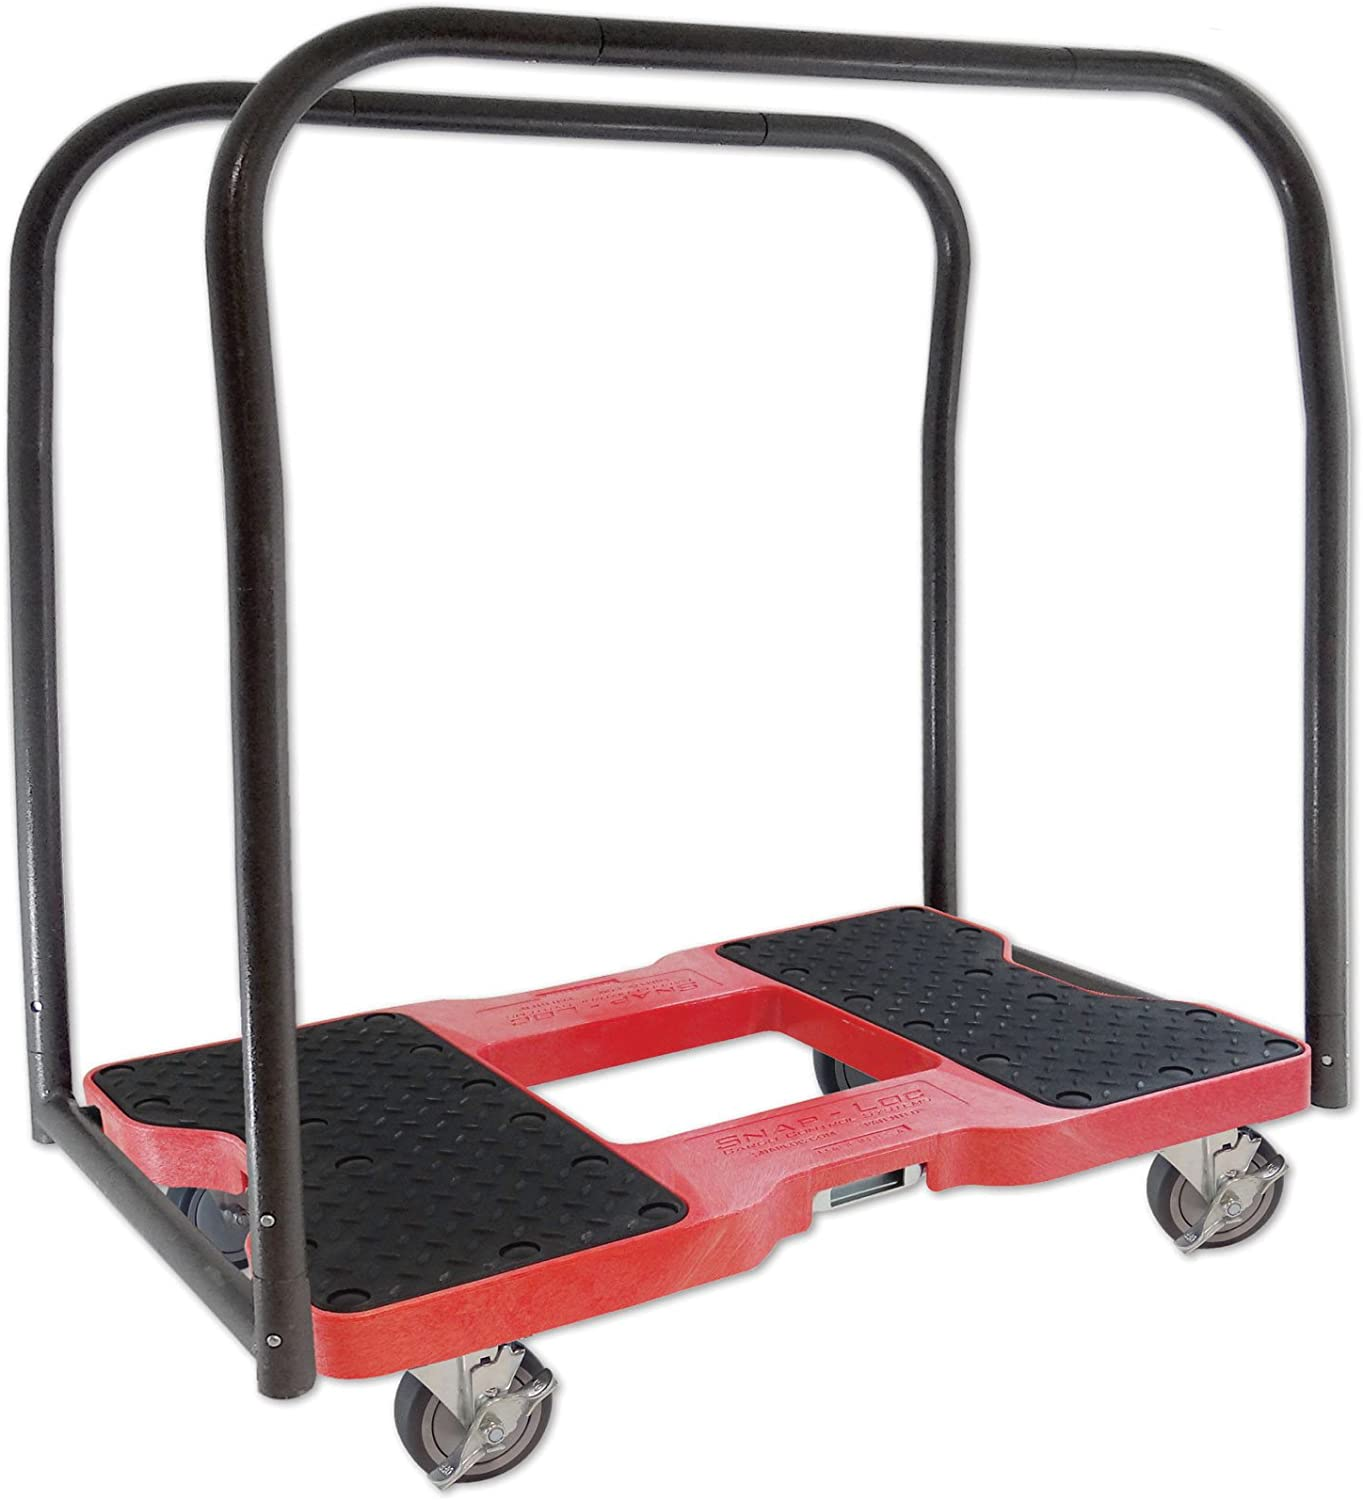 SNAP-LOC 1500 LB Panel CART Dolly RED with Steel Frame, 4 inch Casters, Panel Bars and Optional E-Strap Attachment